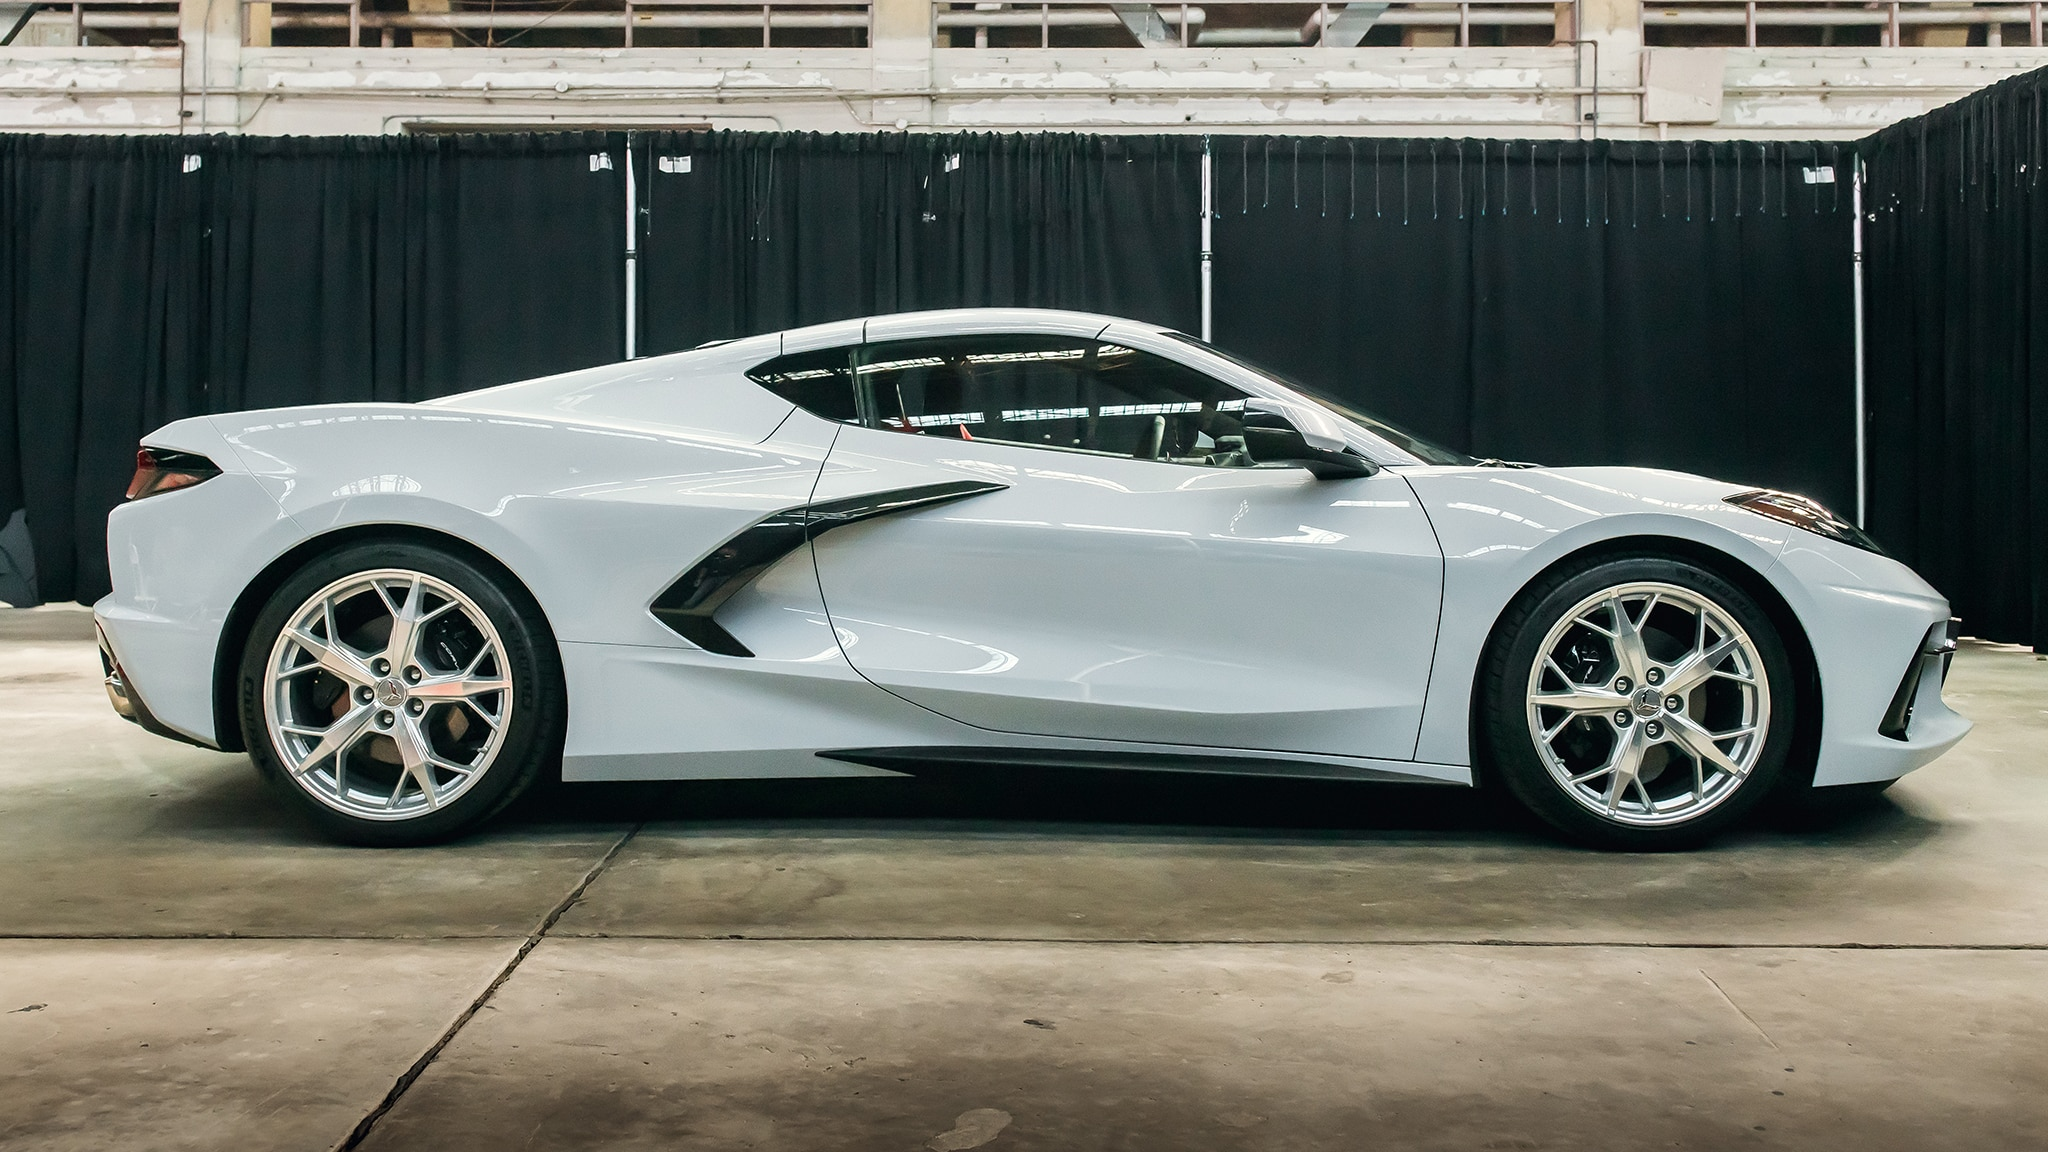 The 2020 C8 Chevrolet Corvette S Sub 60k Price Won T Last Long